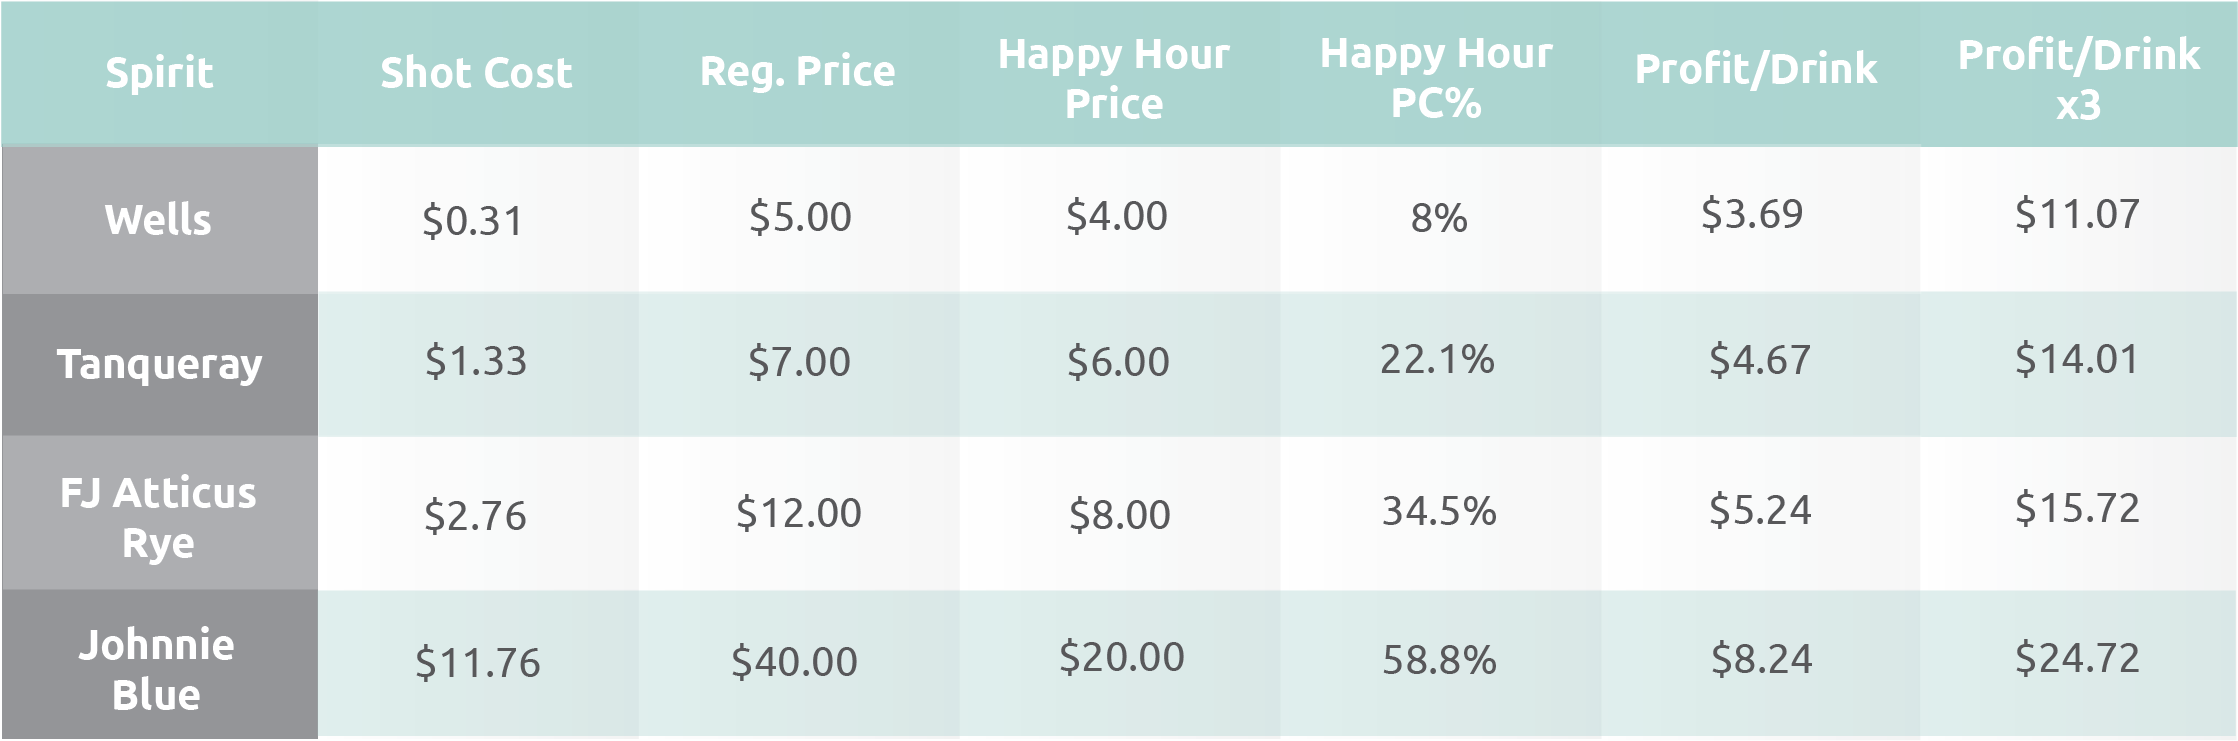 Happy Hour Chart